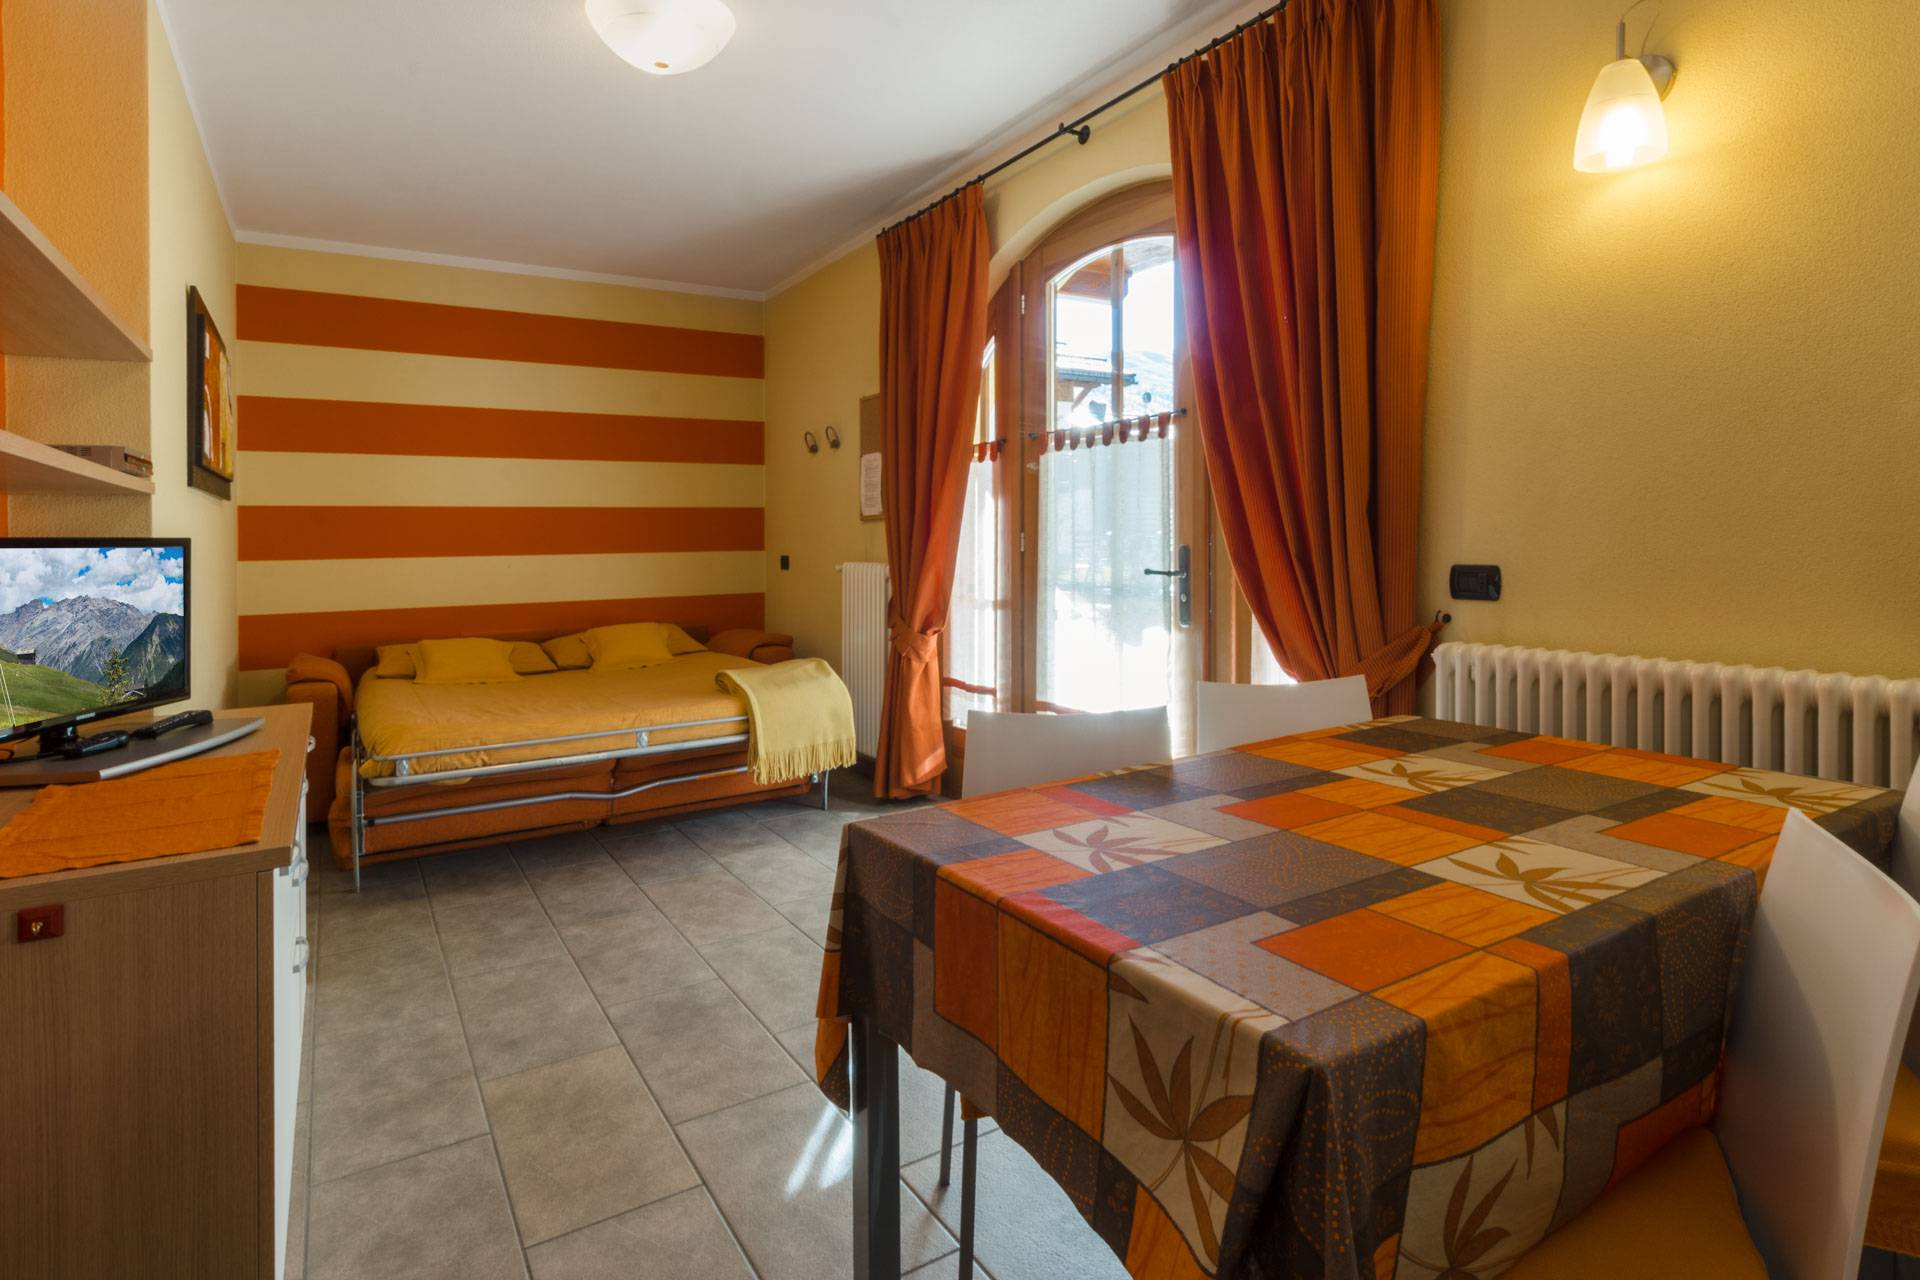 One-bedroom apartment in Livigno, Valtellina